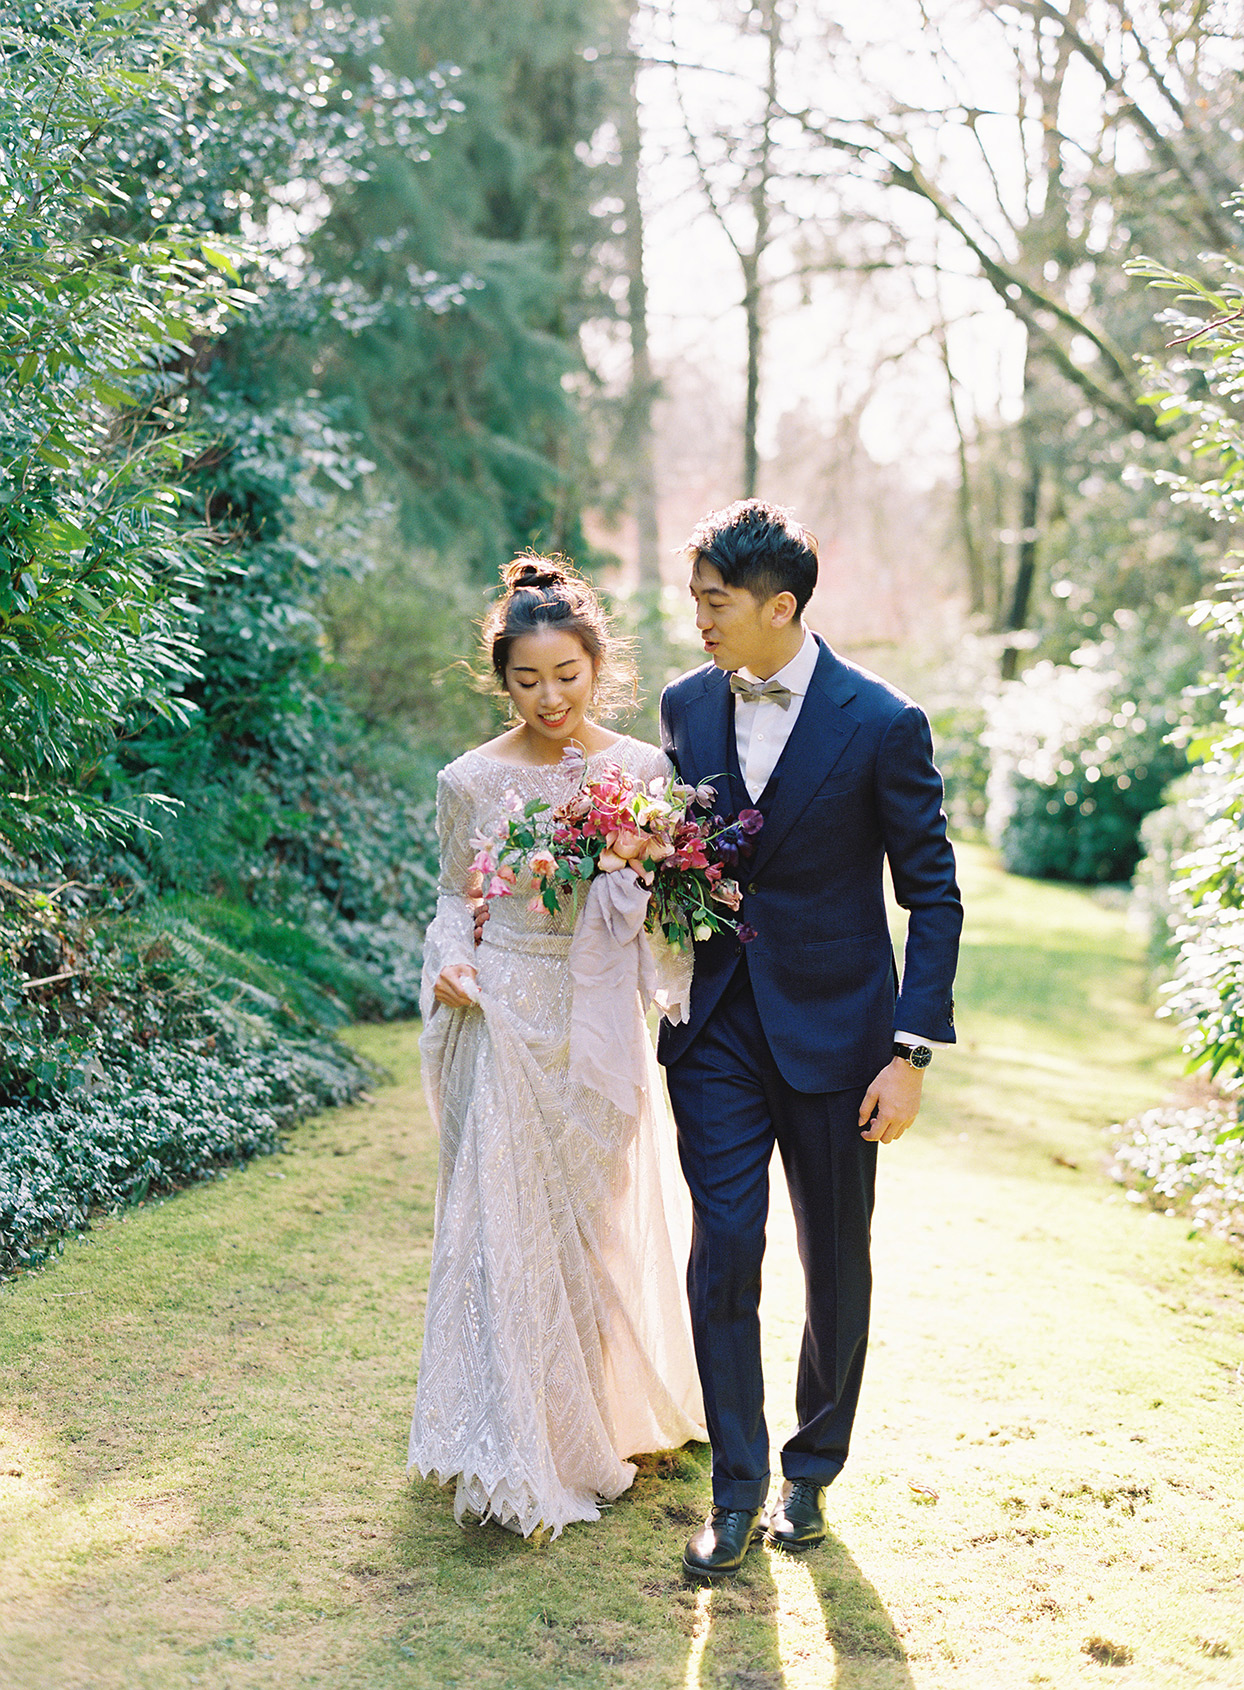 jackie ben wedding couple walking through garden